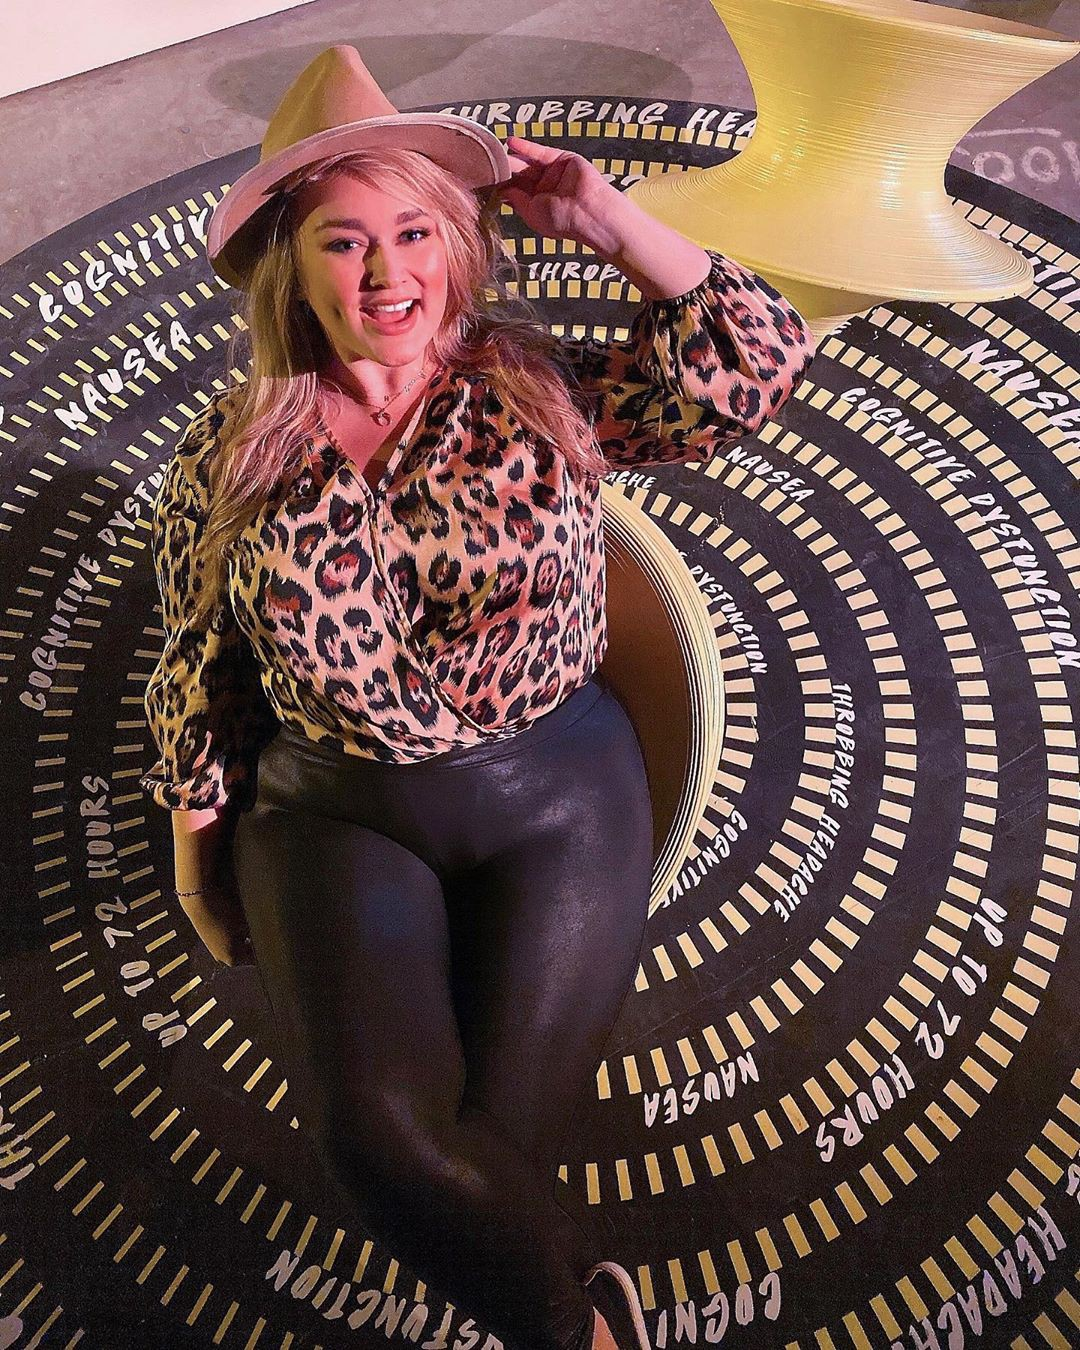 Hunter McGrady fashion accessory outfits for women, instagram photoshoot, hot girls thighs